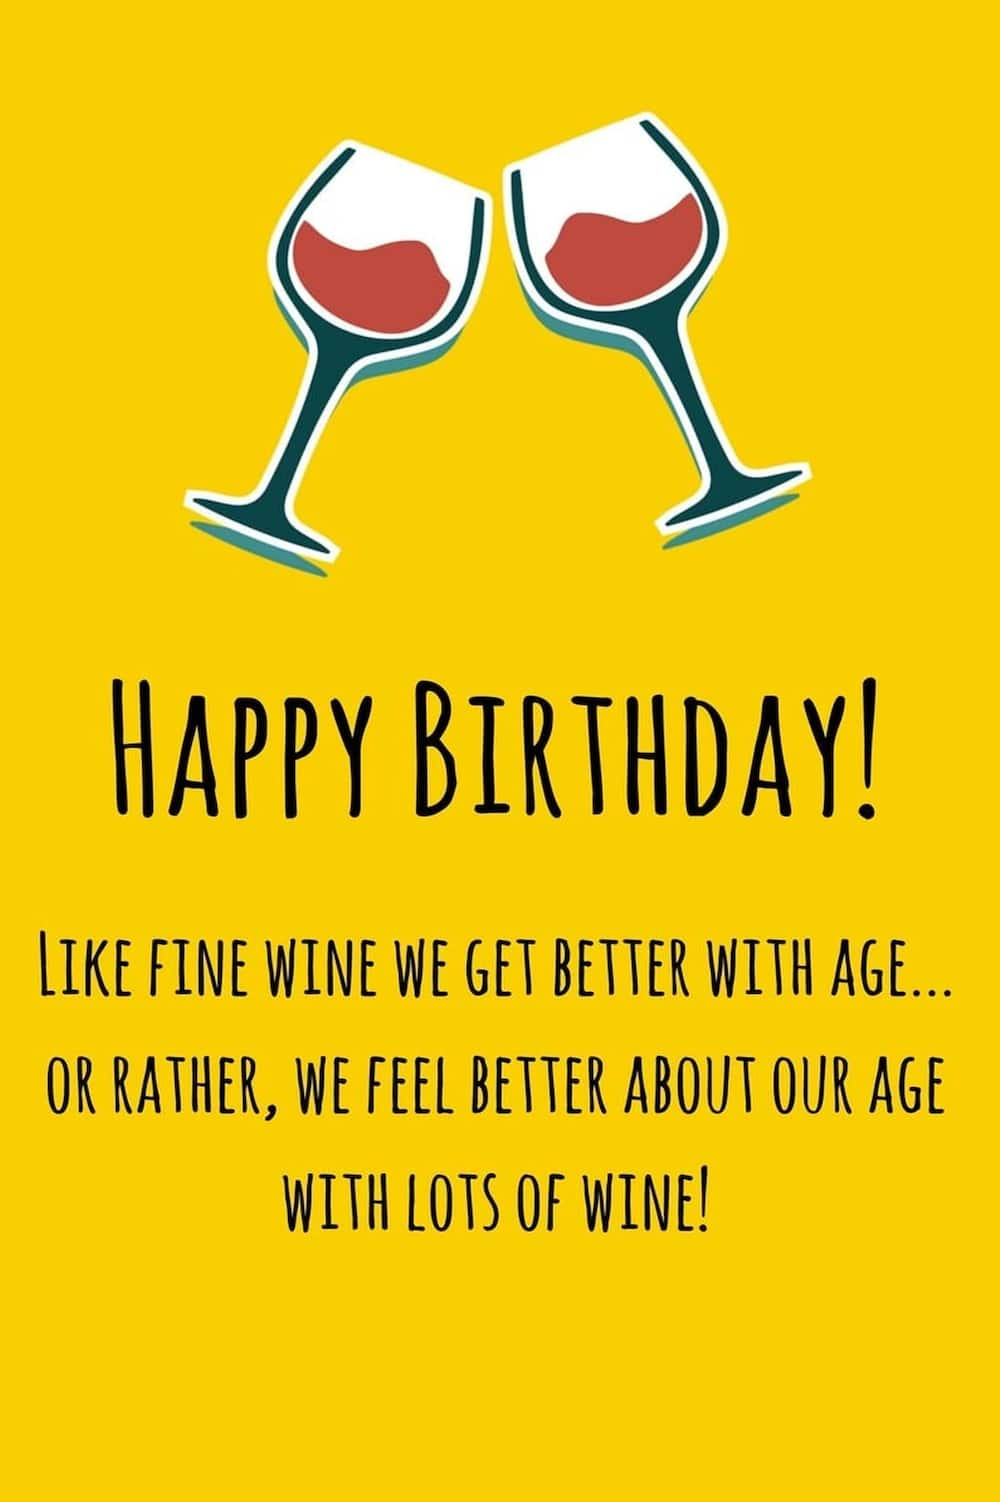 Magnificent Funny Birthday Wishes For Best Friend Tuko Co Ke Funny Birthday Cards Online Alyptdamsfinfo